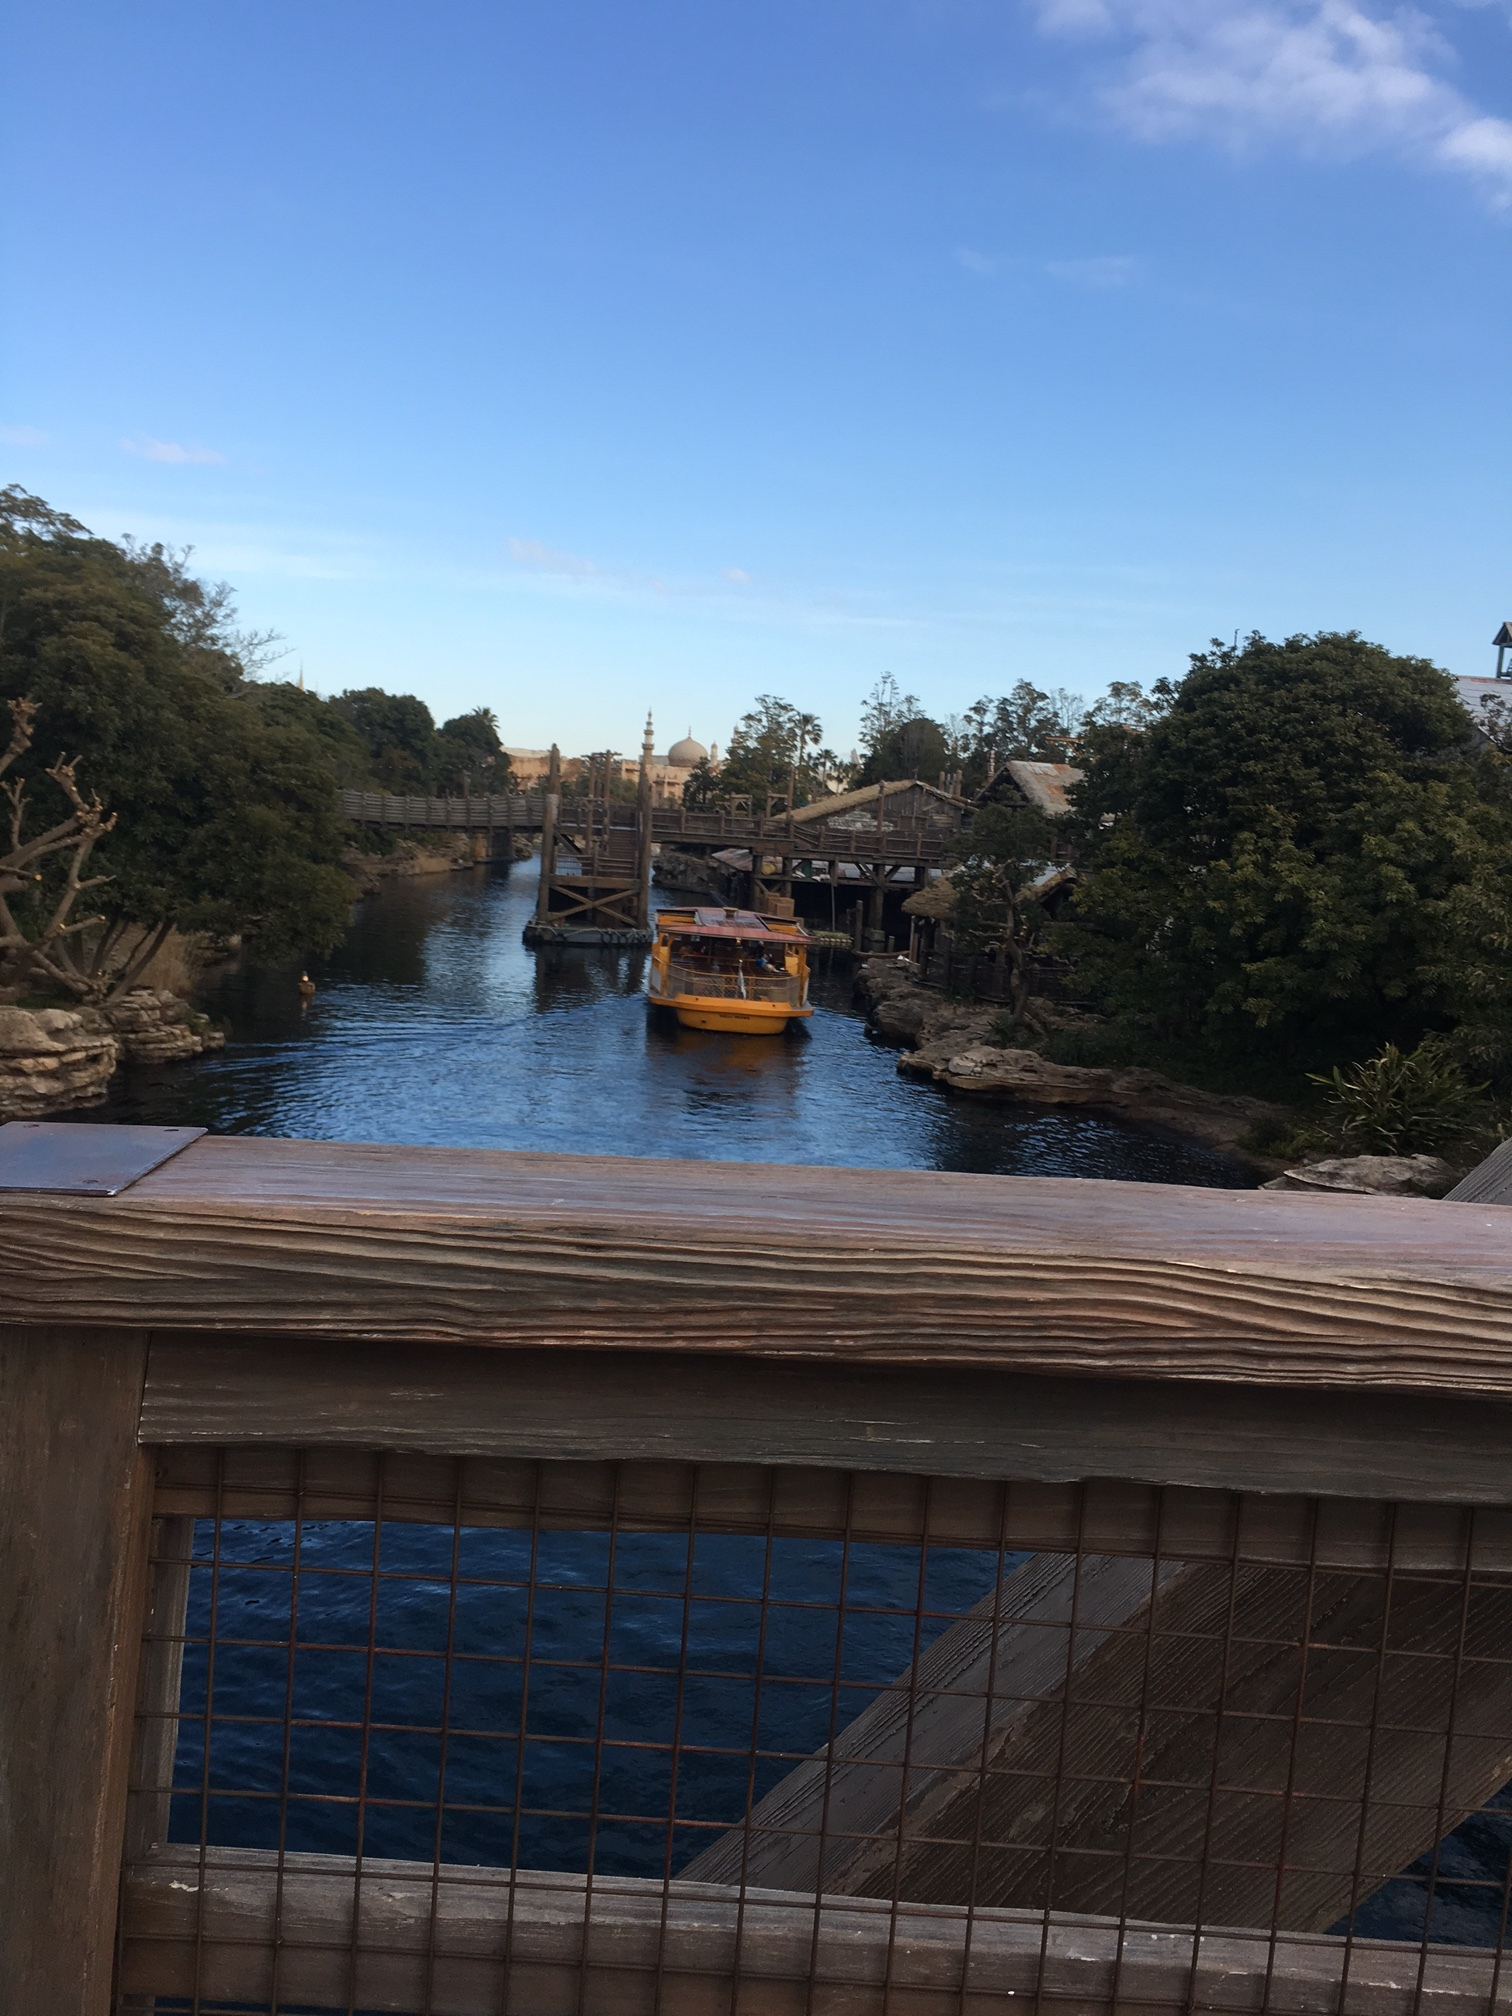 DisneySea-Schuyler-Croy-Ship-Transportation.JPG